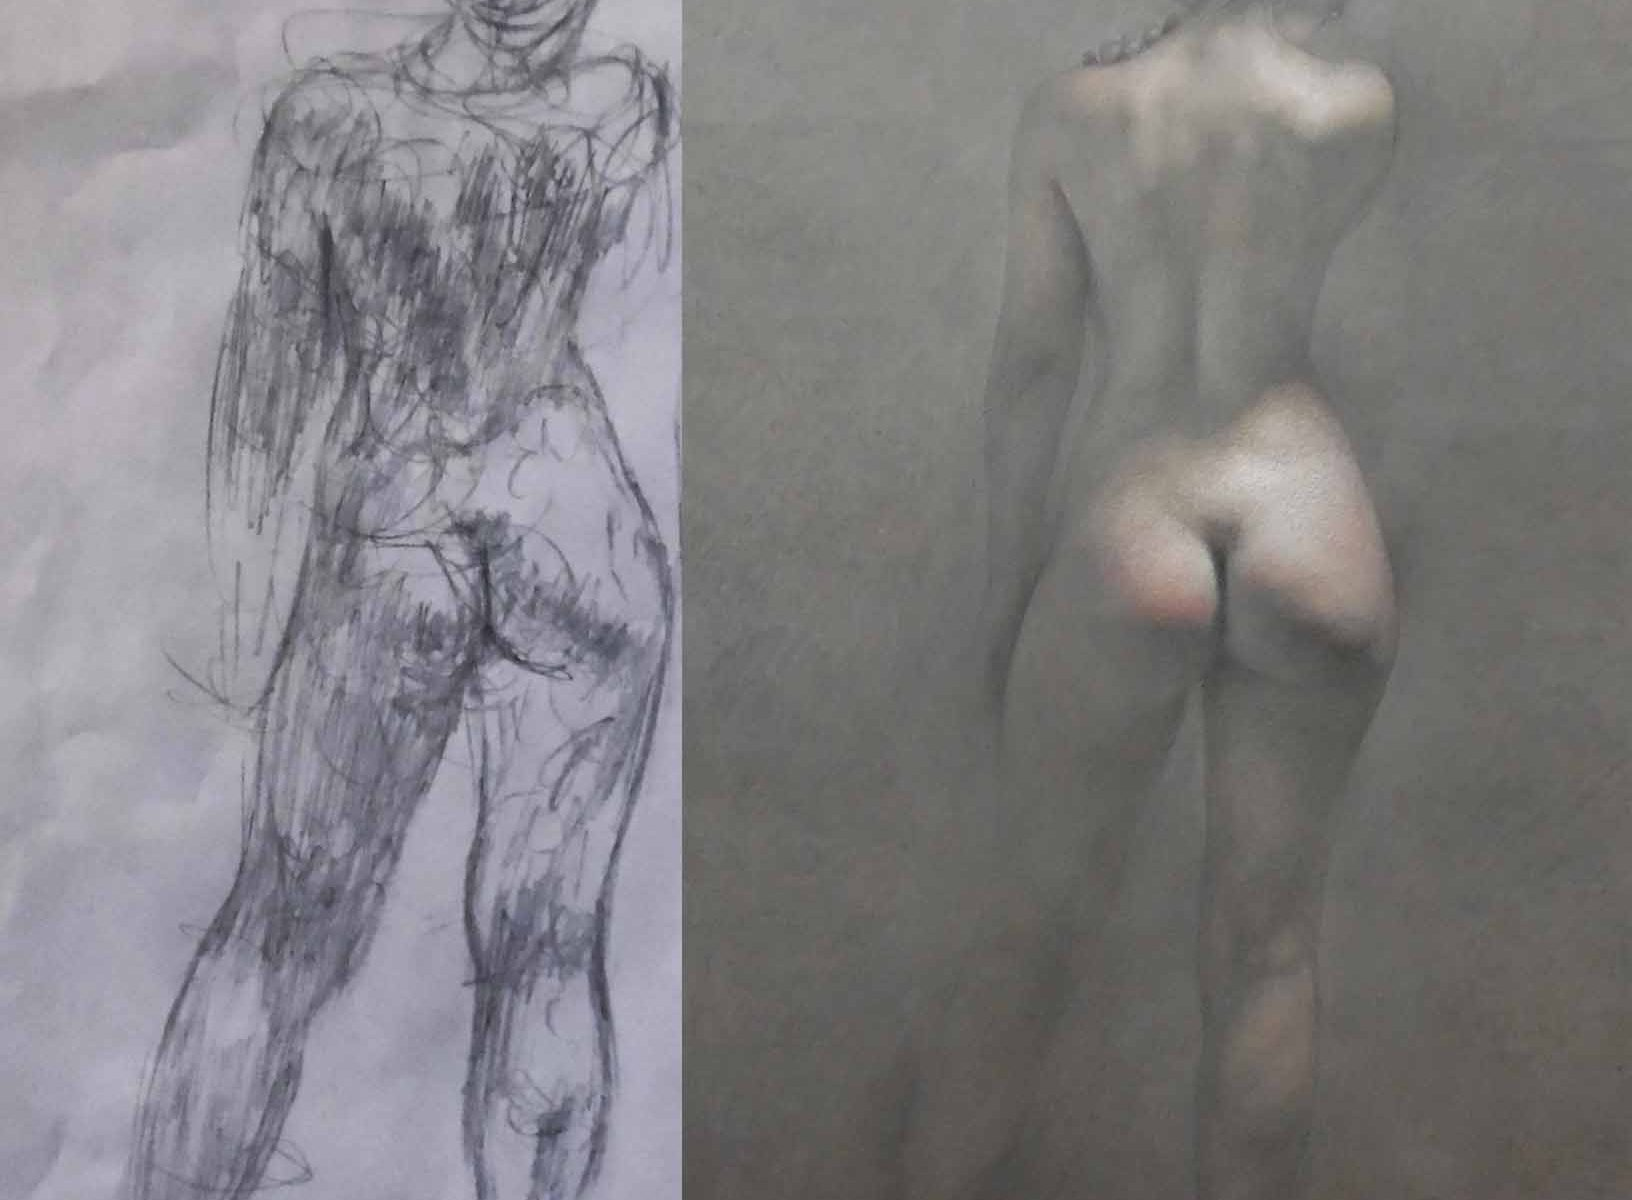 Newberry, Eve and gesture sketch